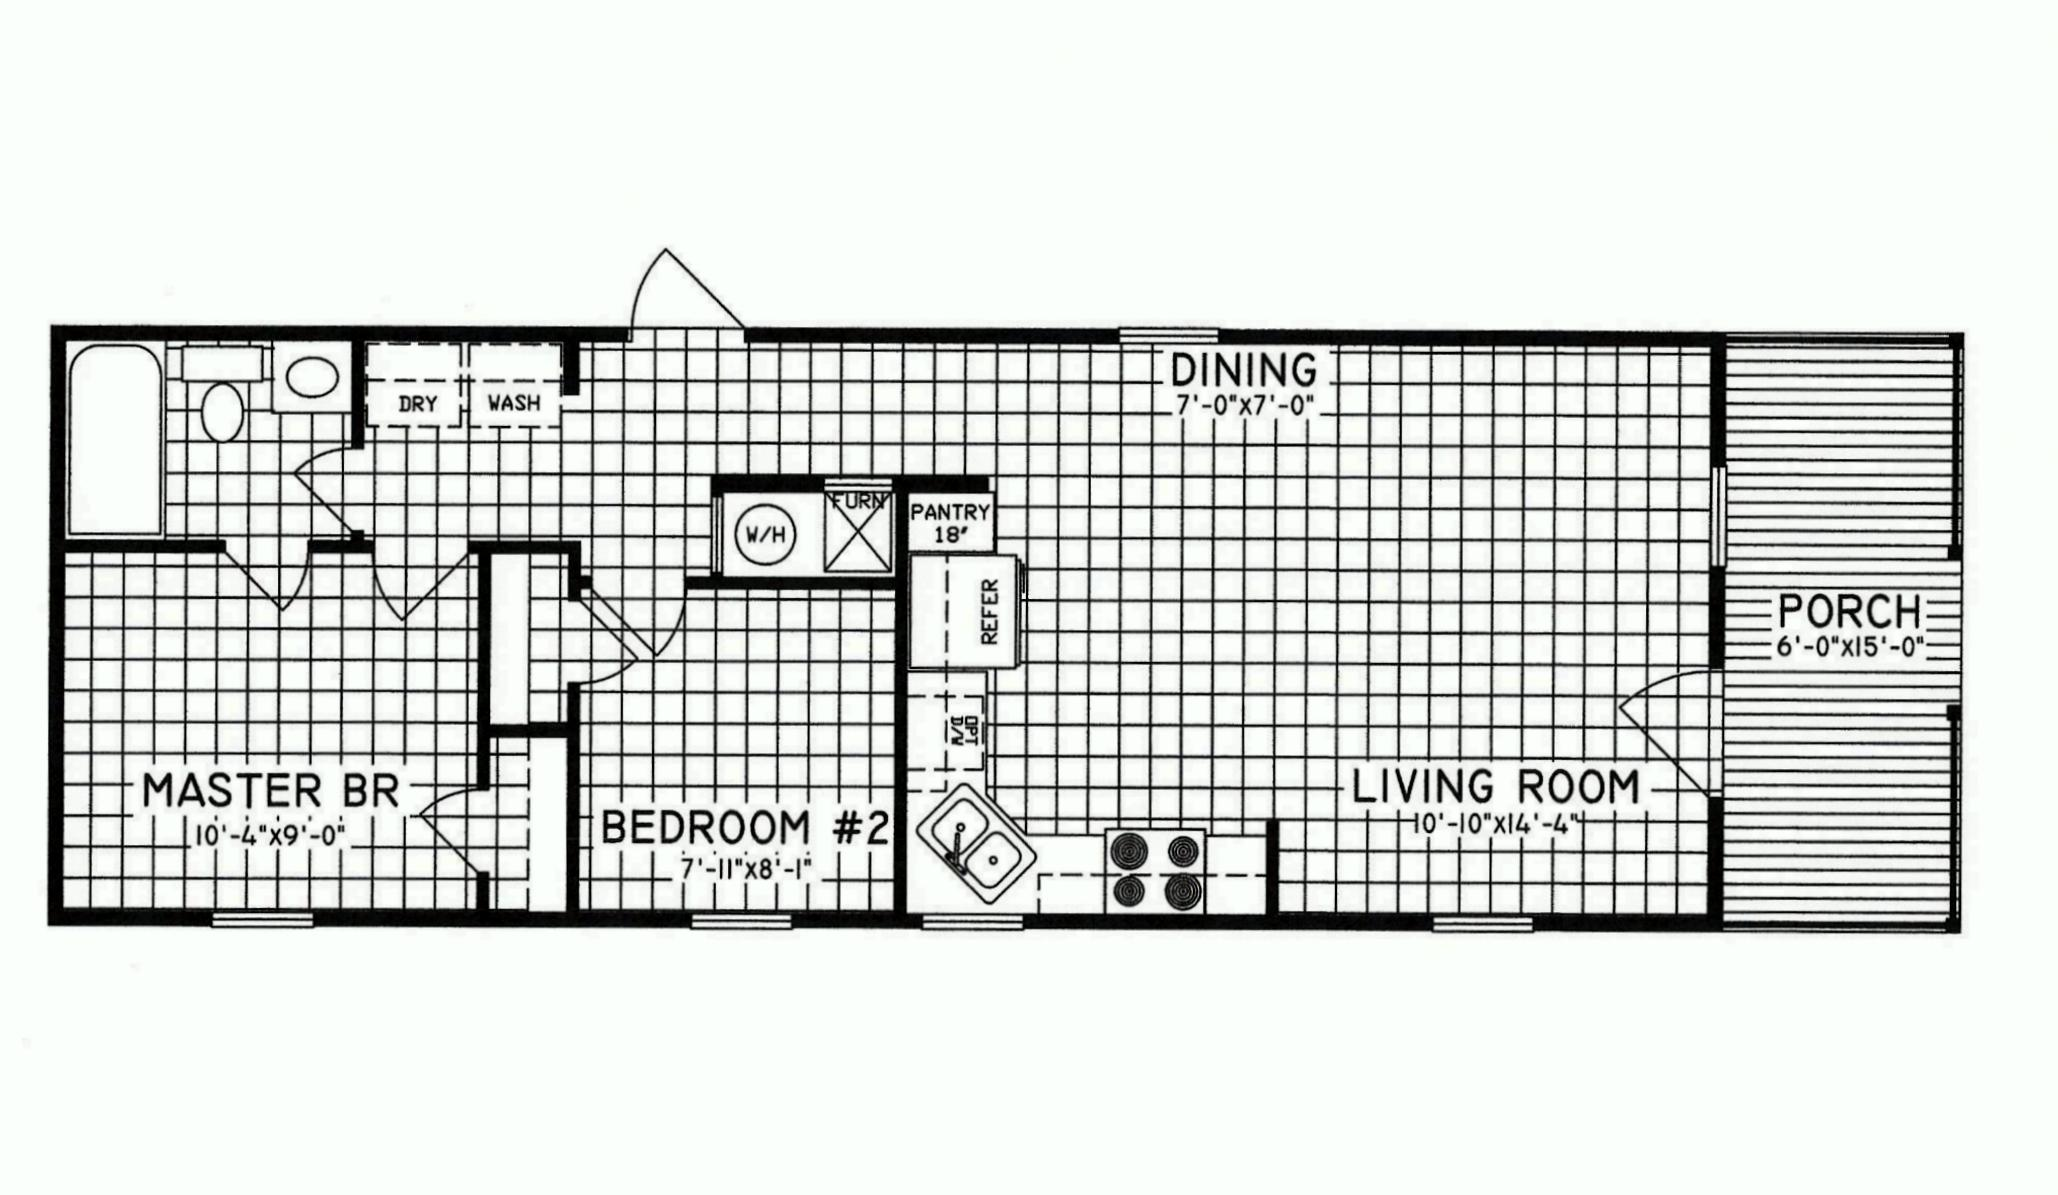 2 bedroom floor plan c 7101 hawks homes manufactured for 2 bedroom mobile home floor plans